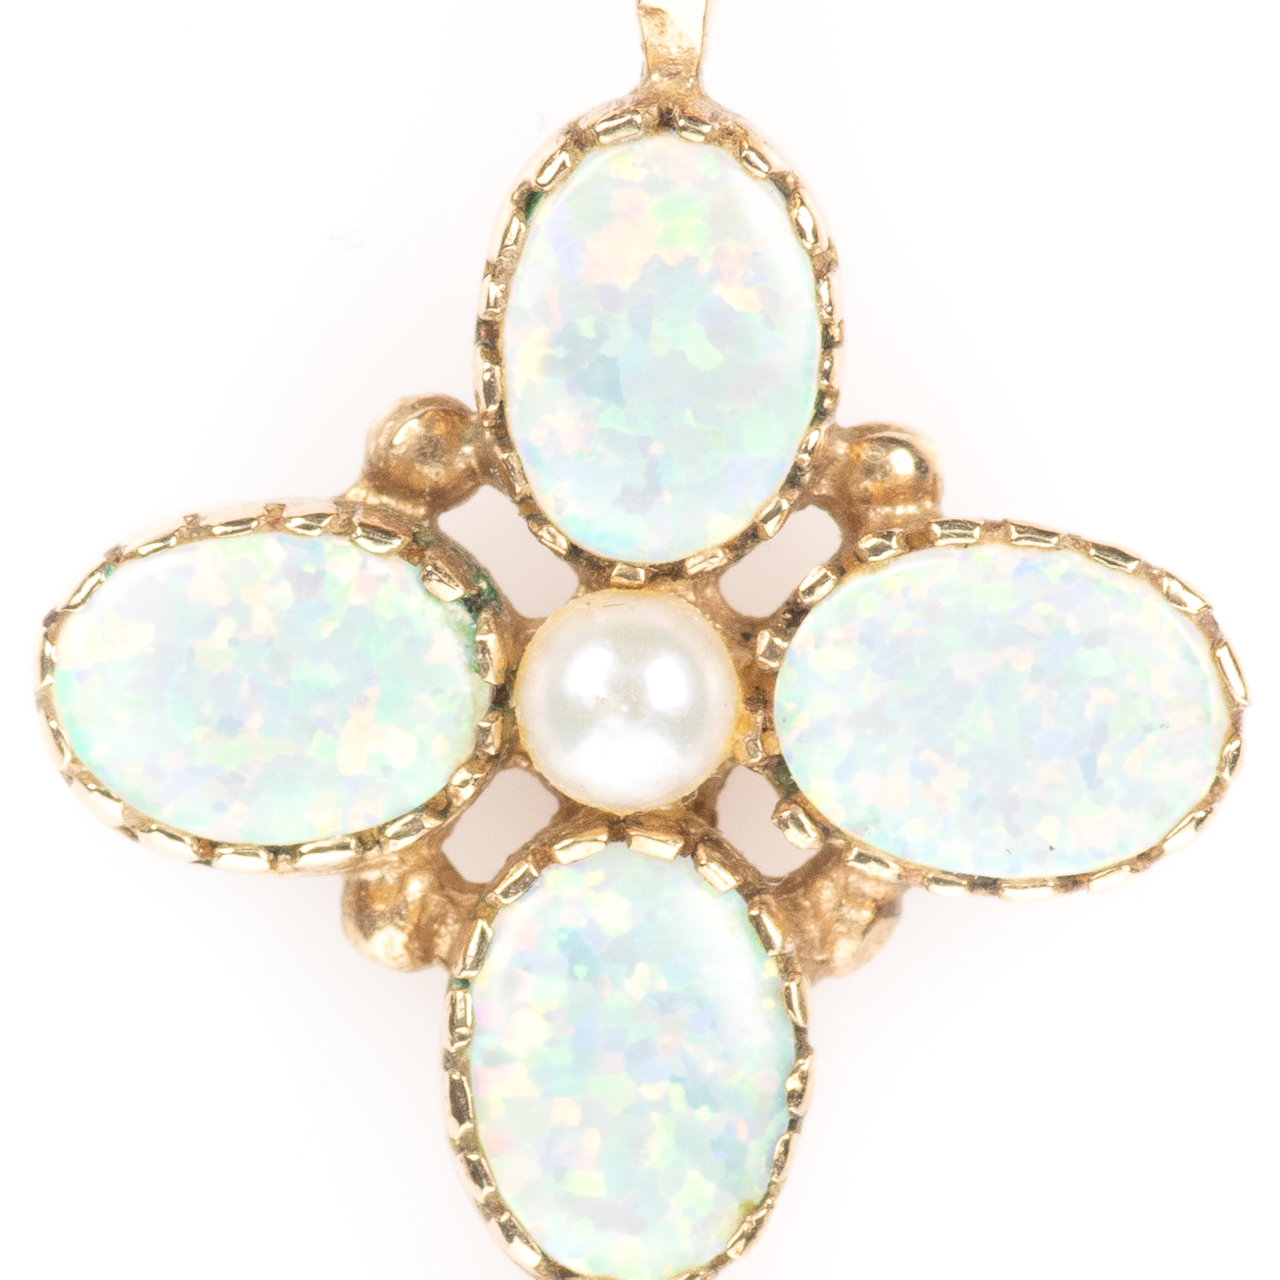 9ct Gold Solid 1ct Opal & Pearl Cross Pendant - Image 3 of 6